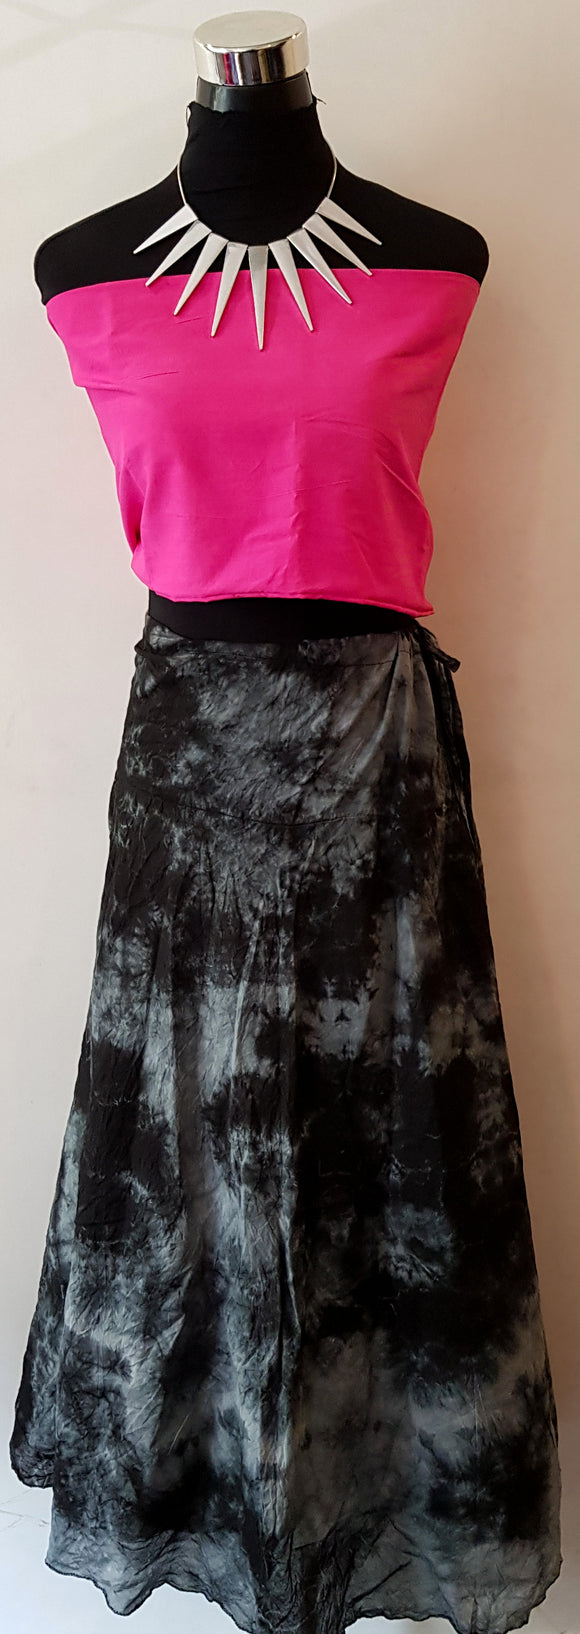 Shibori Black Skirt (C)